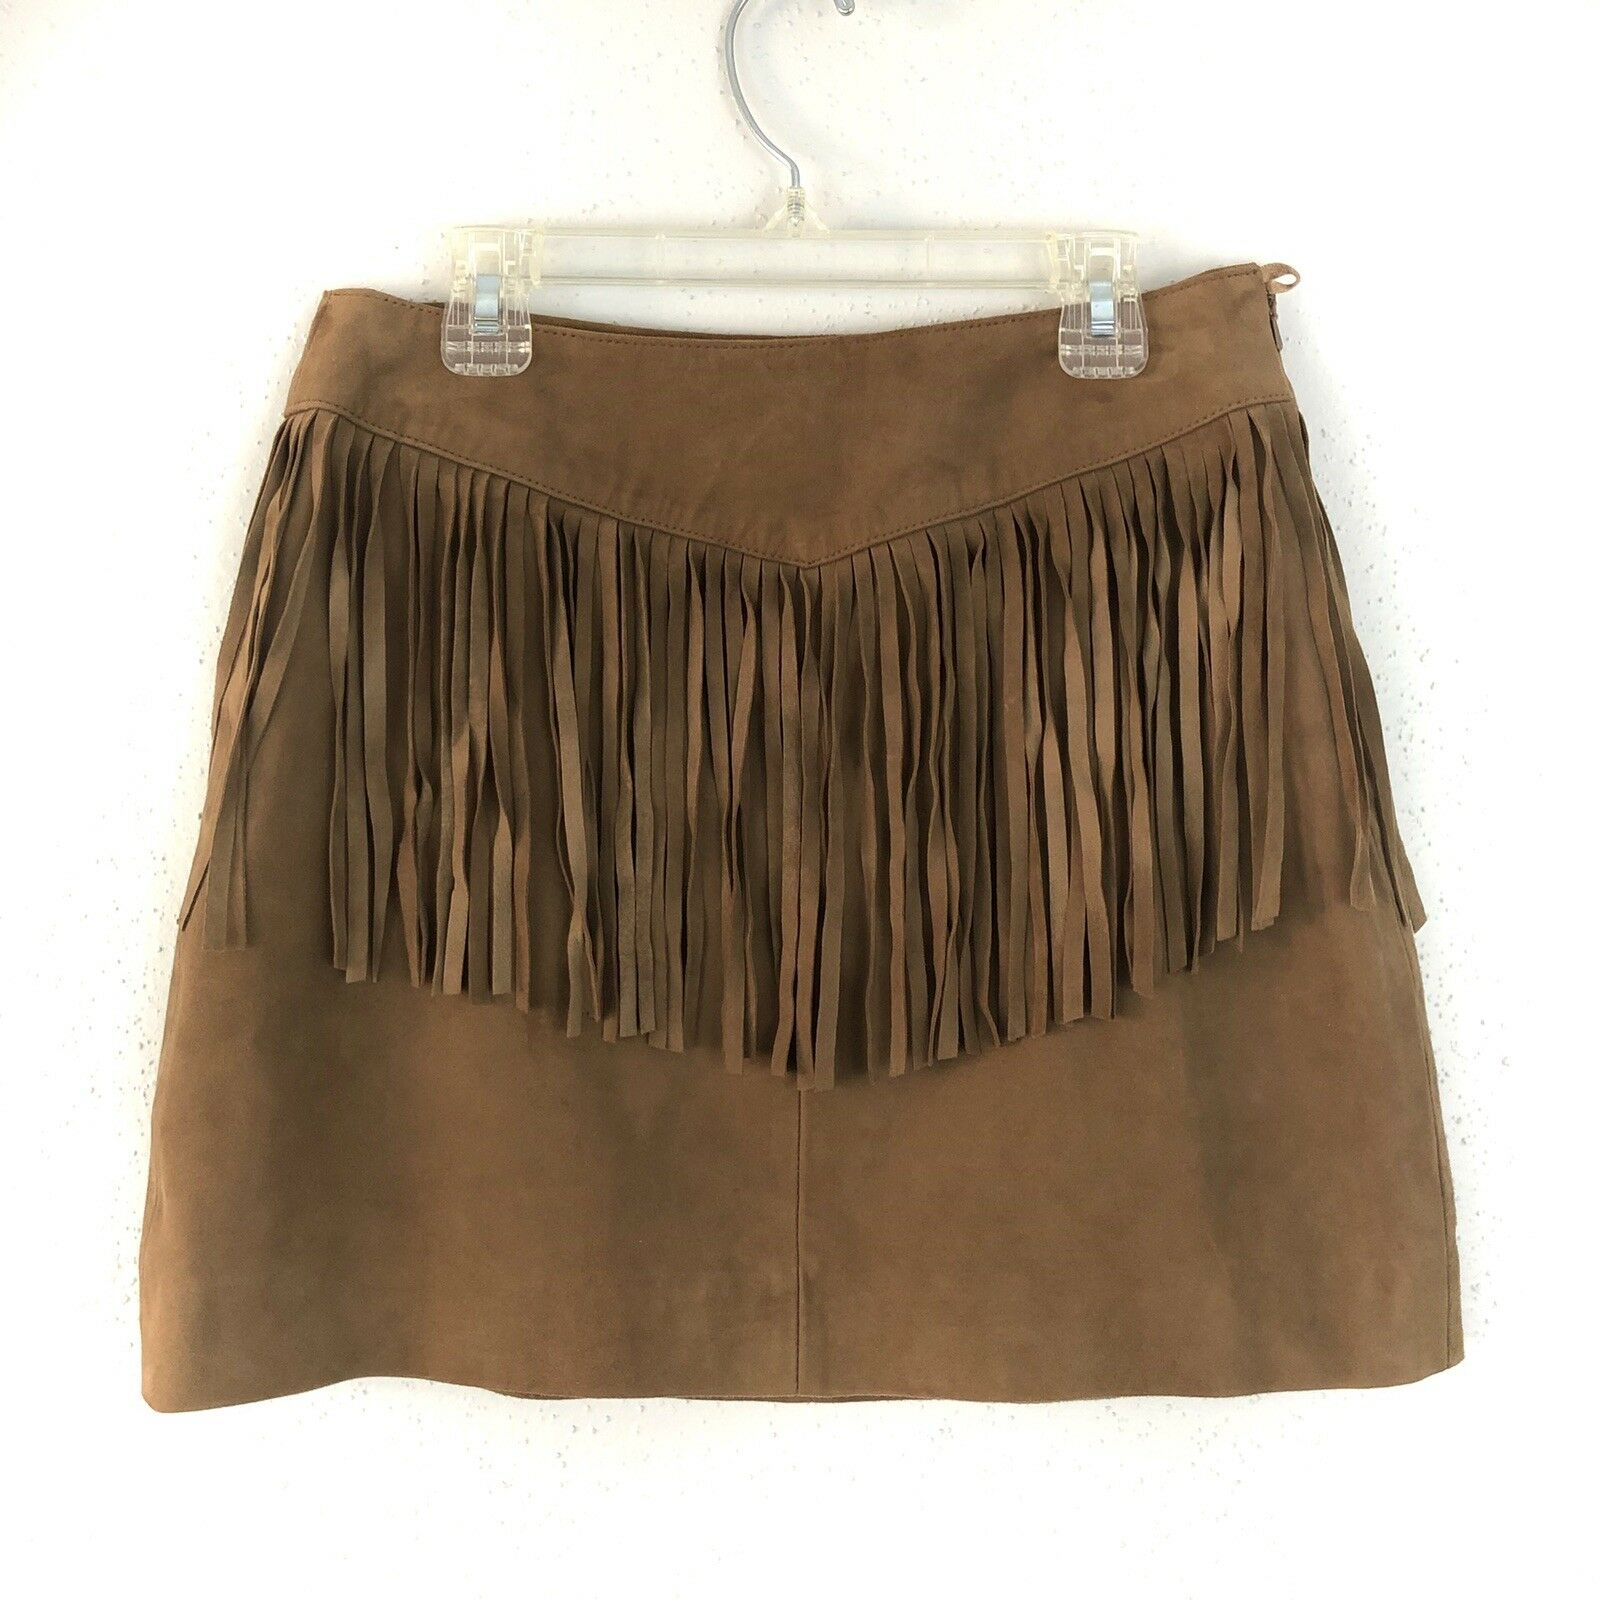 Walter Baker Leather Skirt Size 0 Riley Brown Suede Fringe Mini WB4235  398